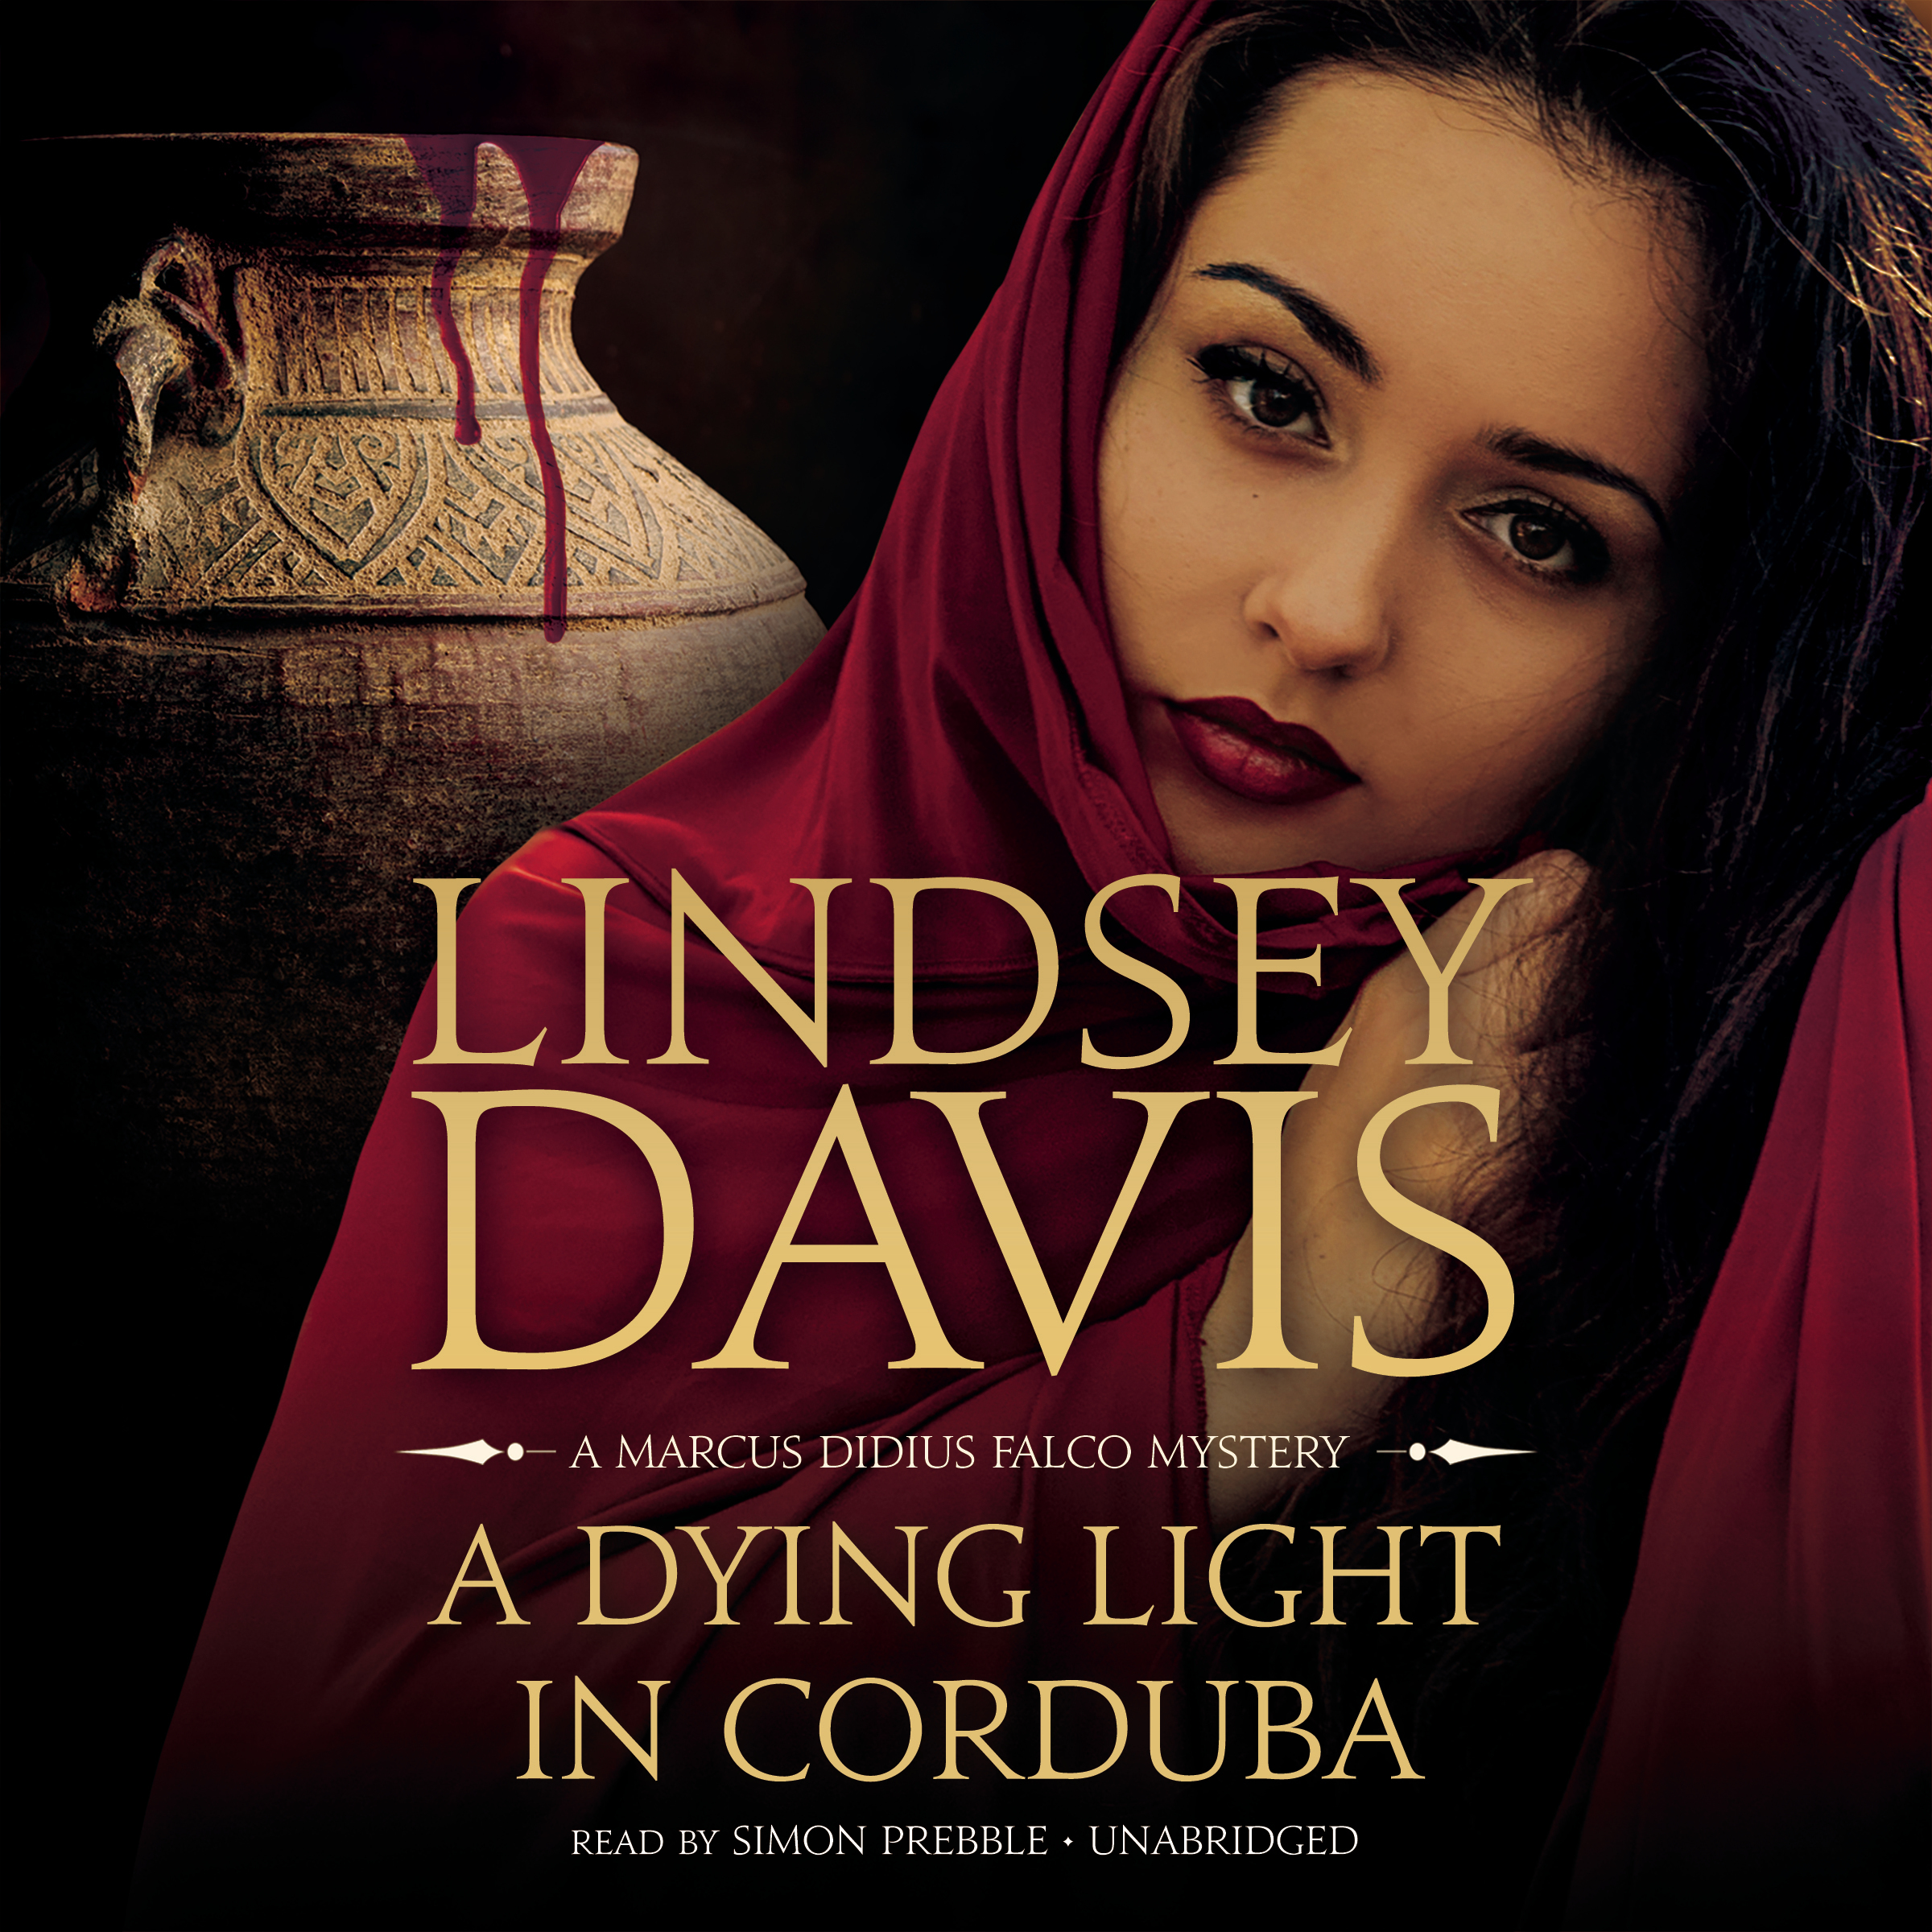 Printable A Dying Light in Corduba: A Marcus Didius Falco Mystery Audiobook Cover Art